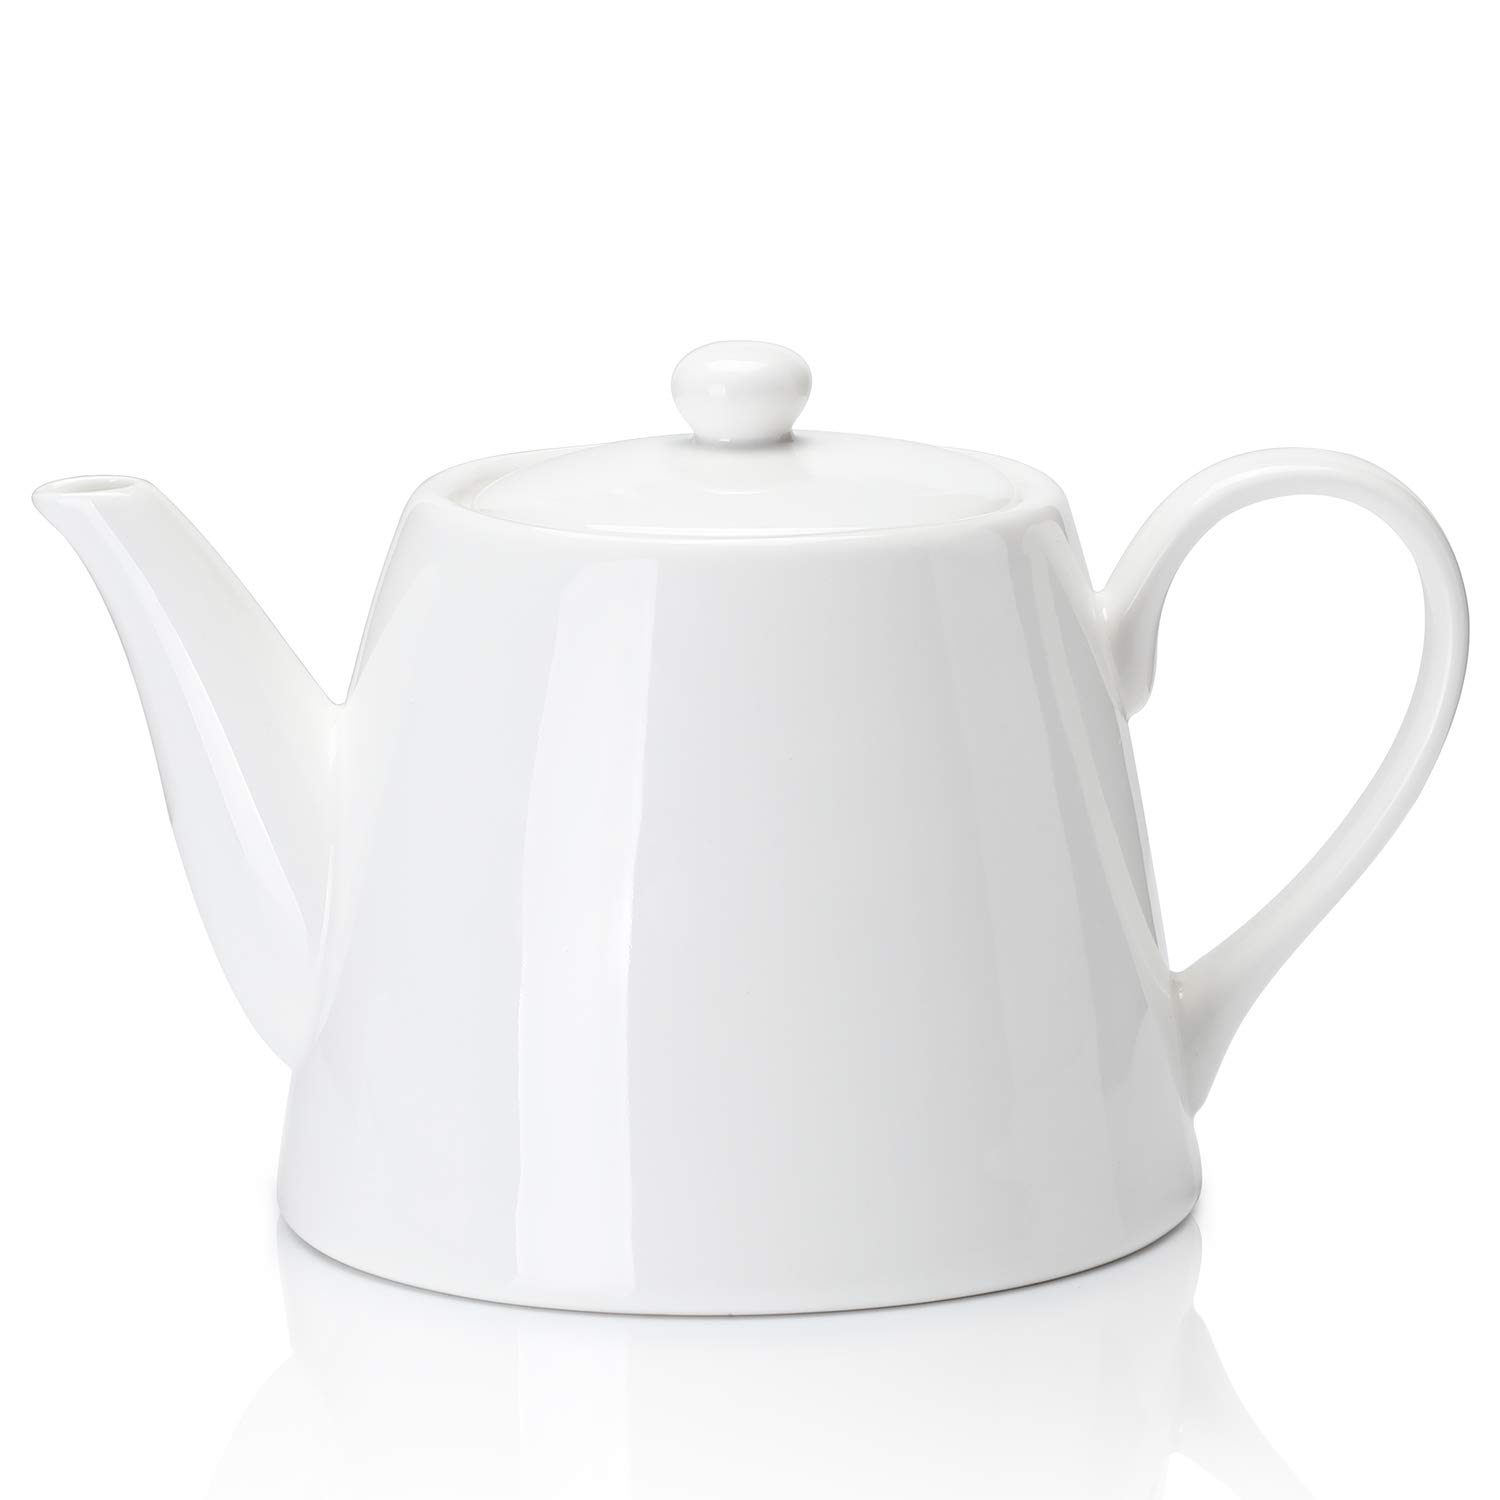 Sweese 223.101 Porcelain Teapot, 28 Ounce Serving Teapot for 2 person by Sweese